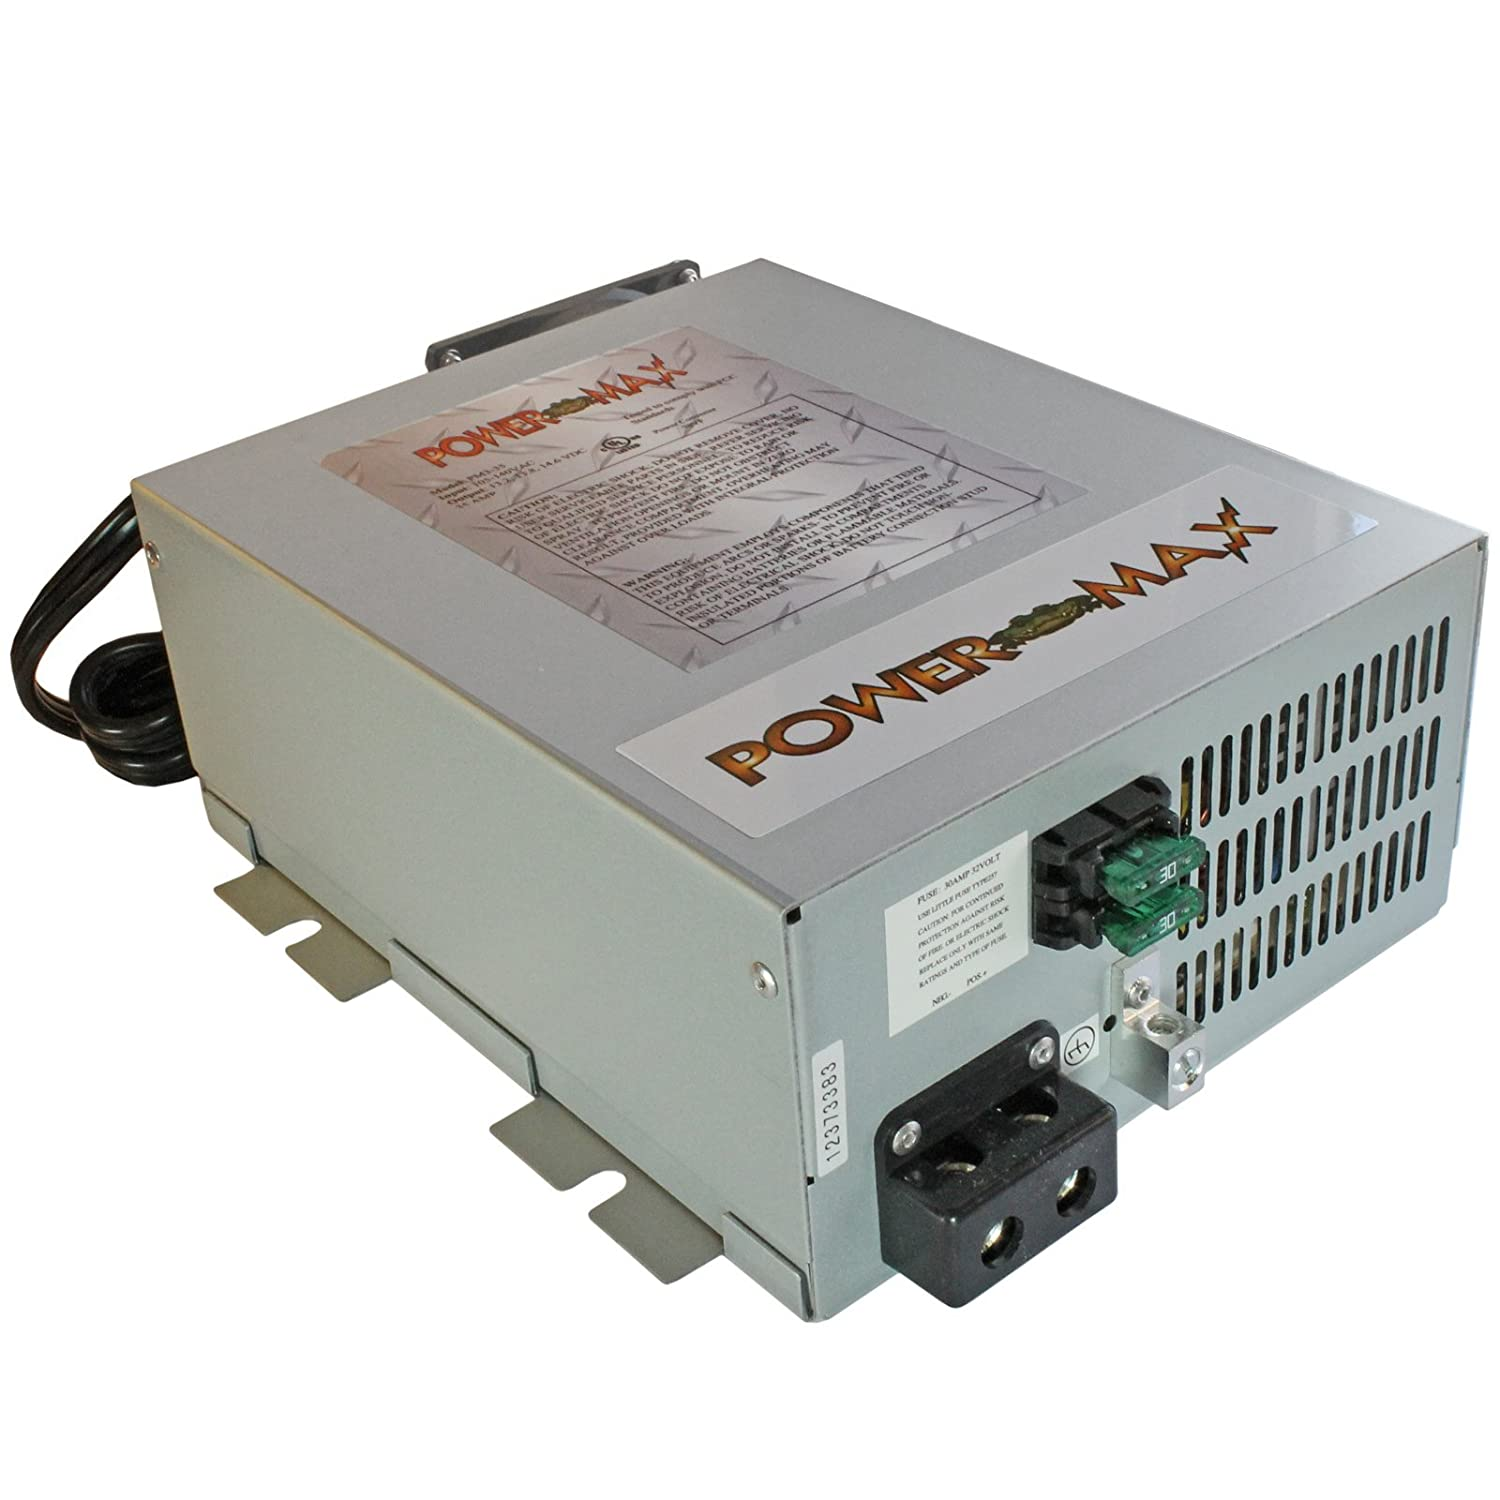 Powermax 110 Volt Ac To 12 Dc Power Supply Old 20 Amp Fuse Box Converter Charger For Rv Pm3 45 Electronics